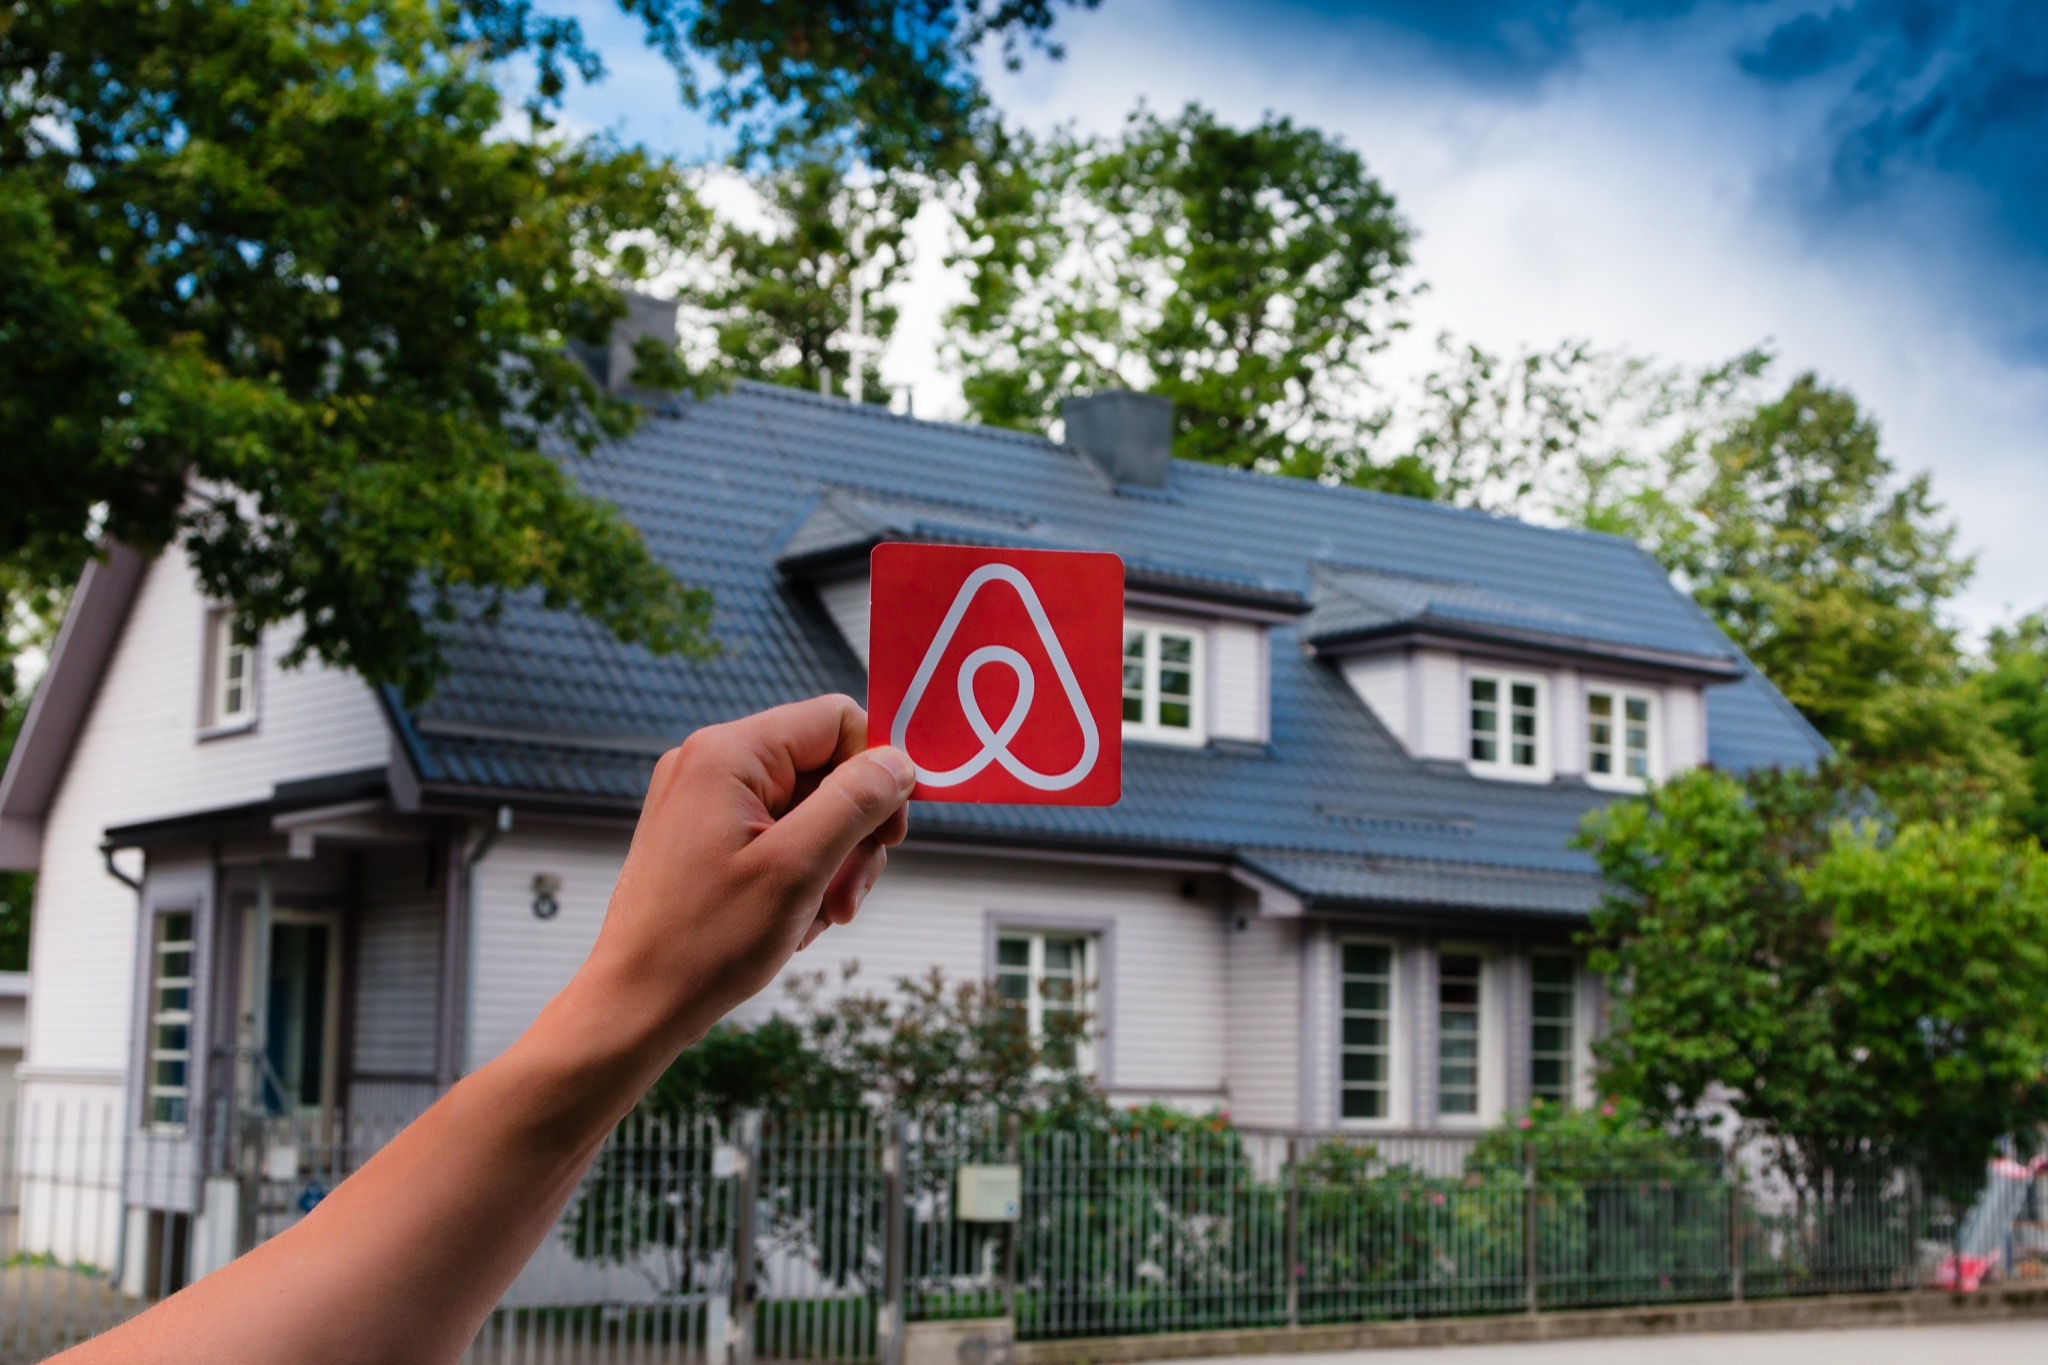 Someone holding an Airbnb sign in front of a house.